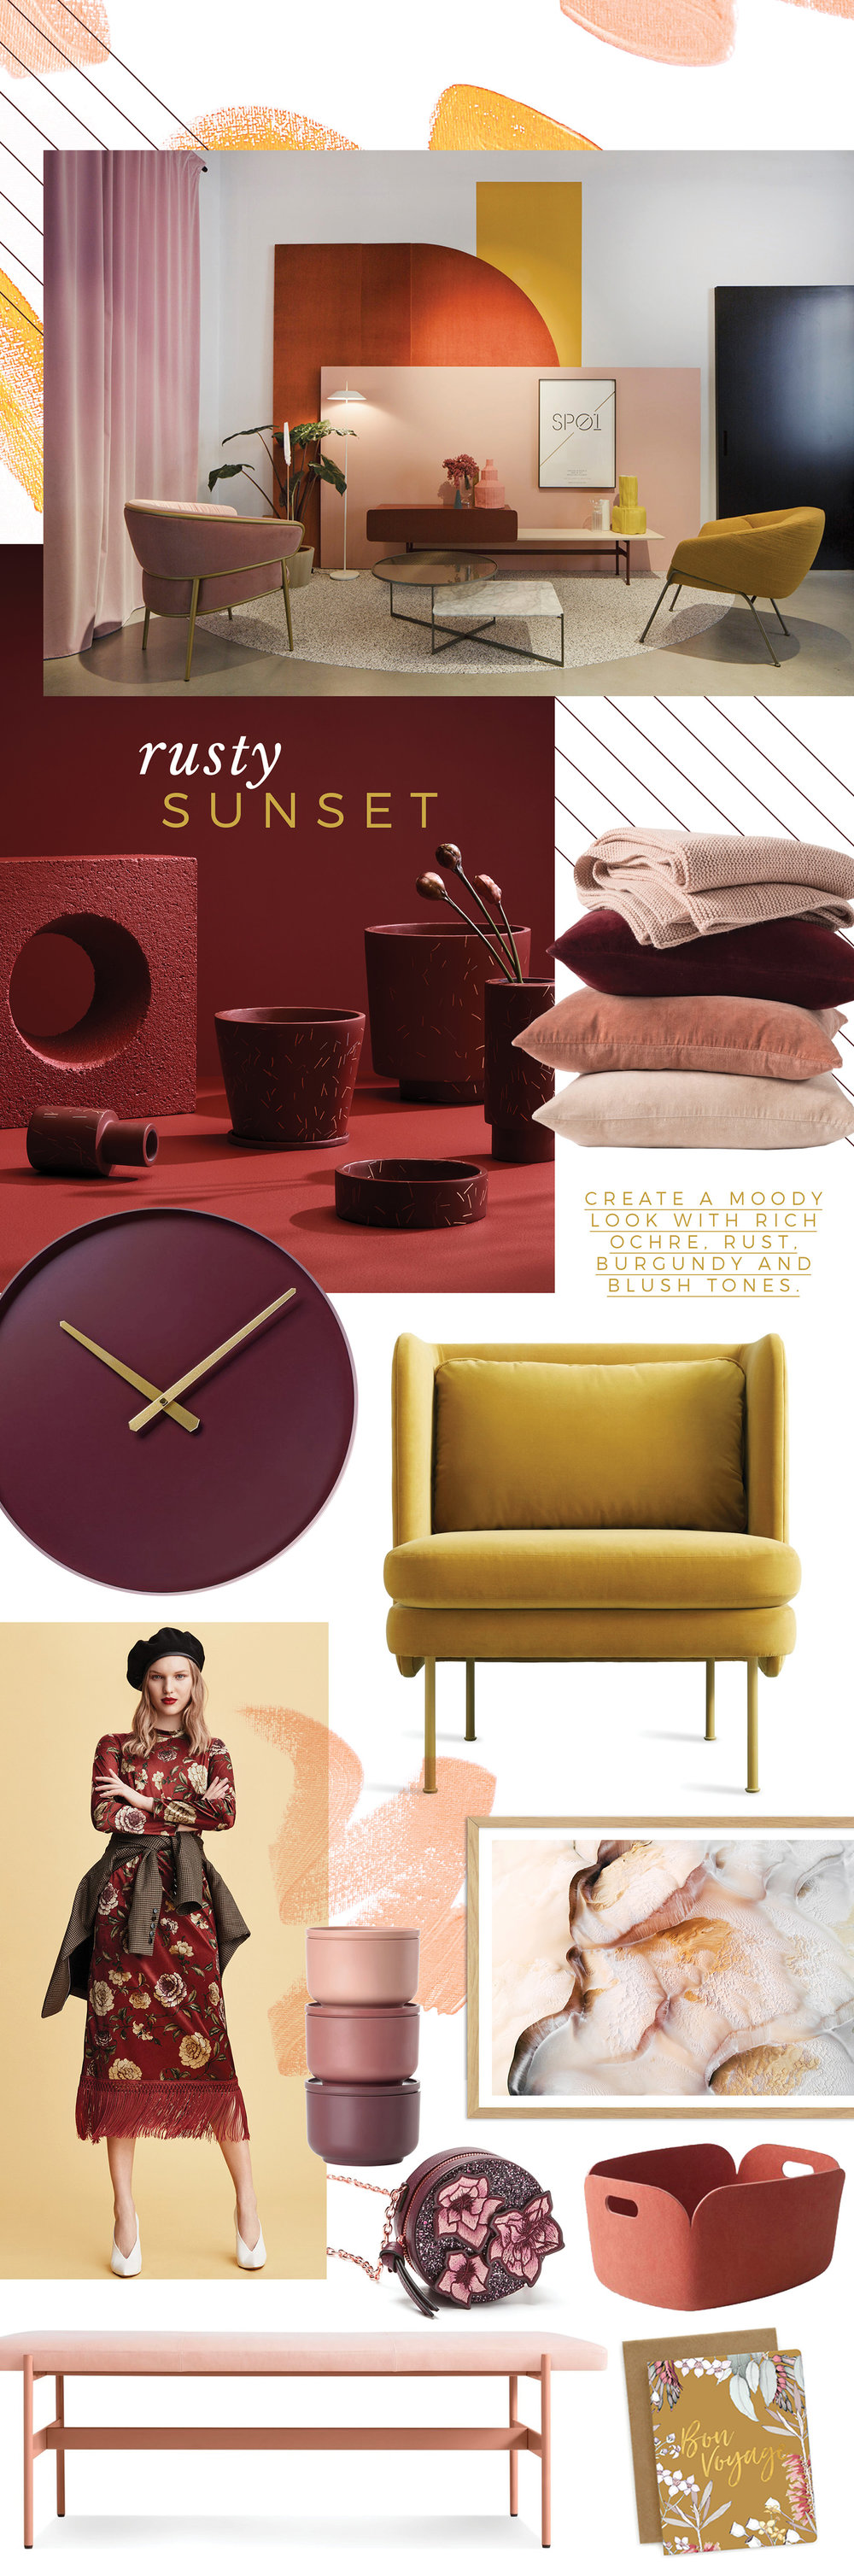 adore_home_blog_rusty_sunset_colour_trend_red_burgundy_ochre_rust_blush_pink.jpg